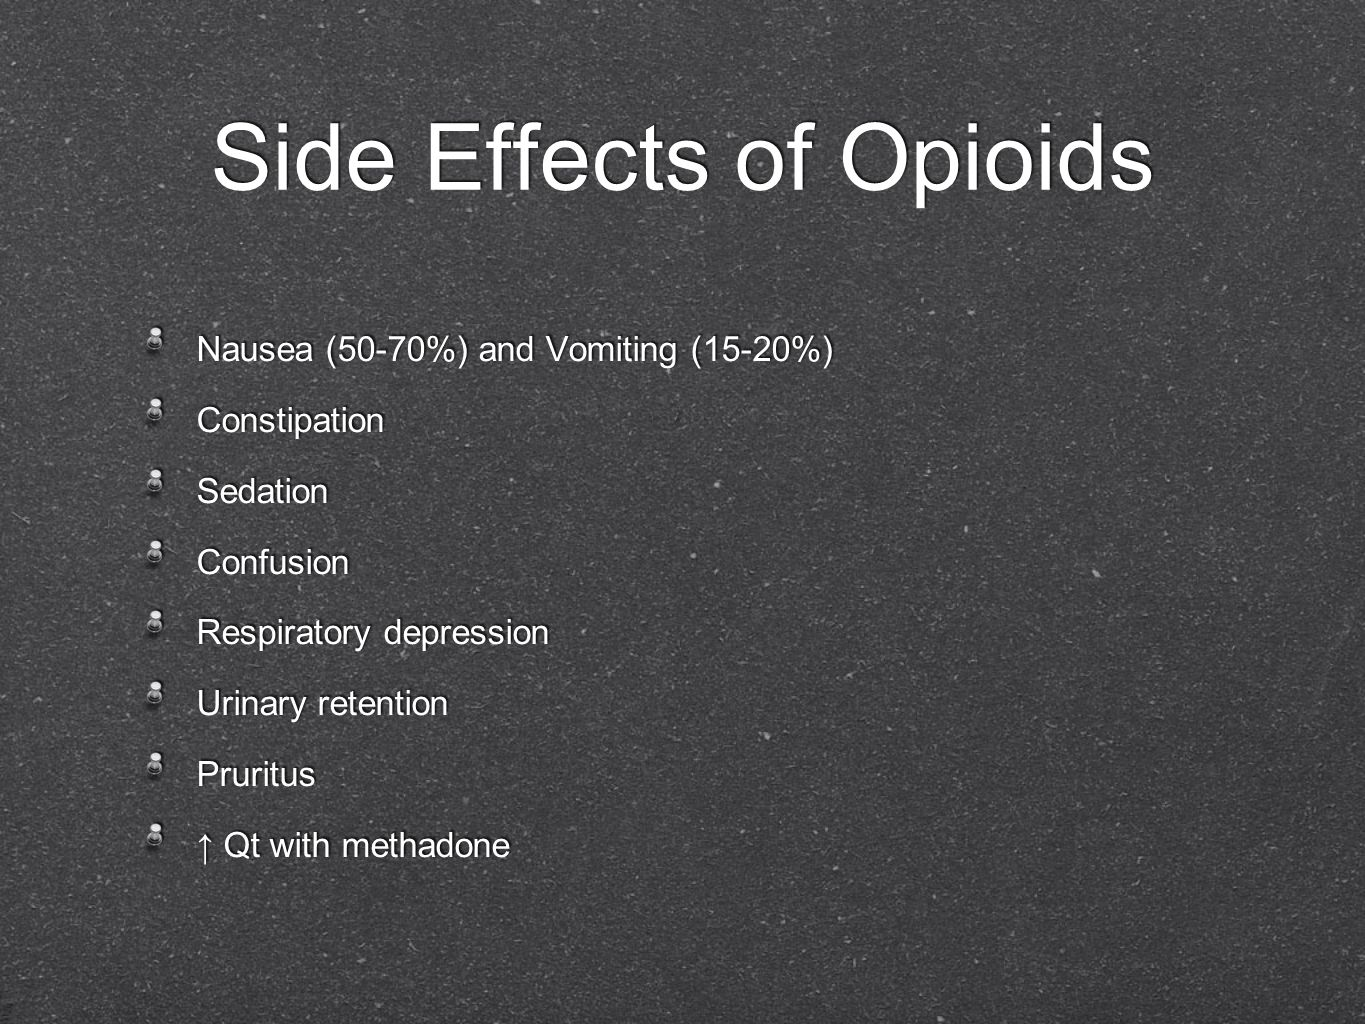 Side Effects of Opioids